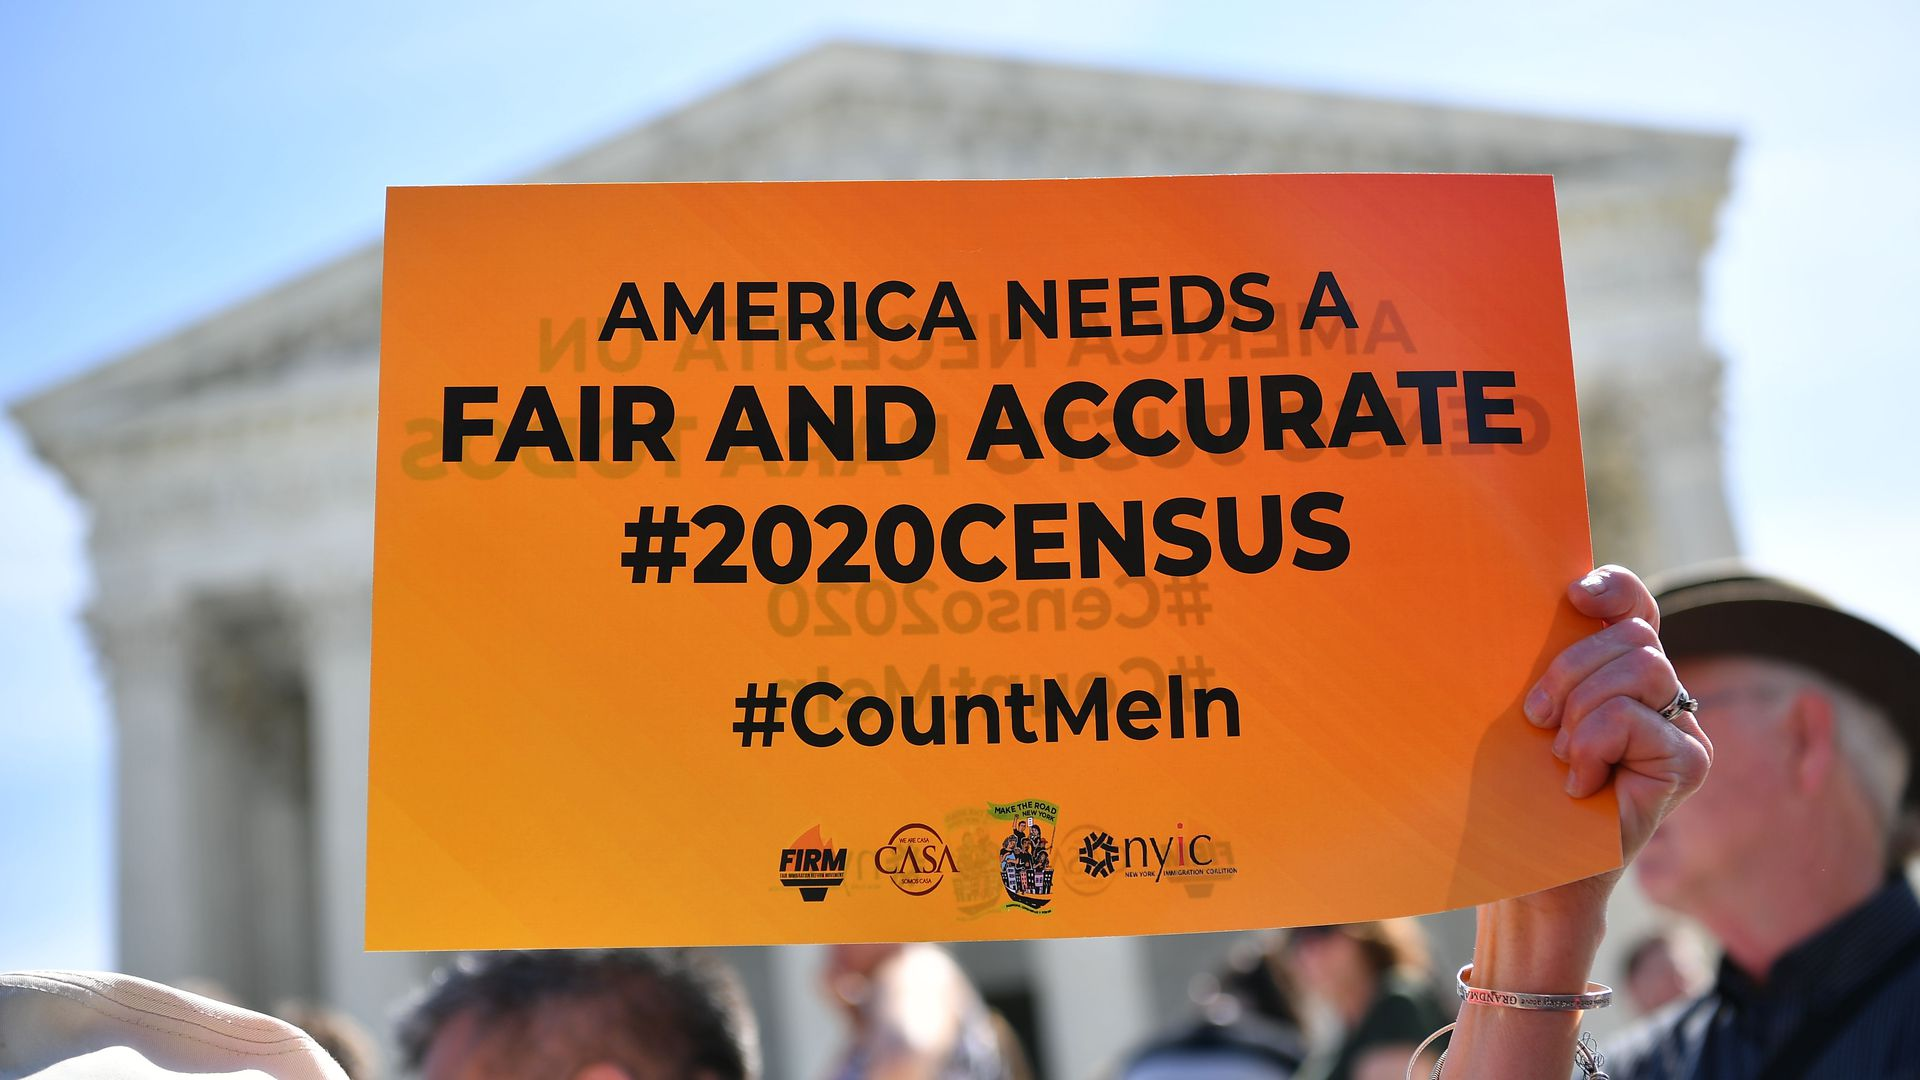 A protester hoists a sign calling for a fair and accurate 2020 Census on the steps of the U.S. Supreme Court at an April rally.